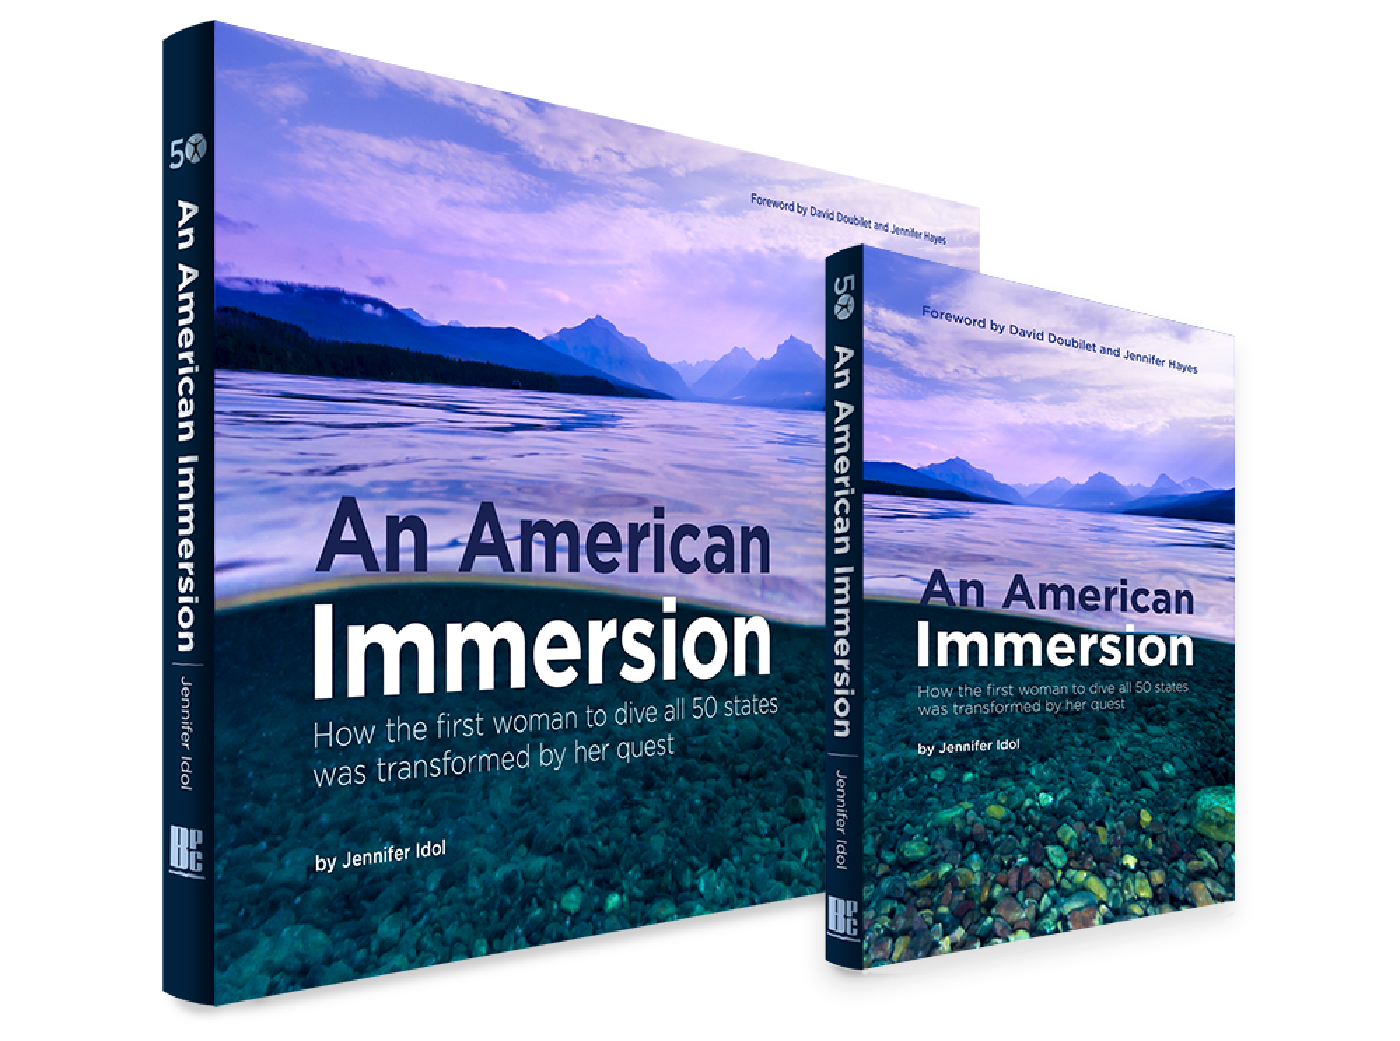 Softcover and Hardcover versions of An American Immersion